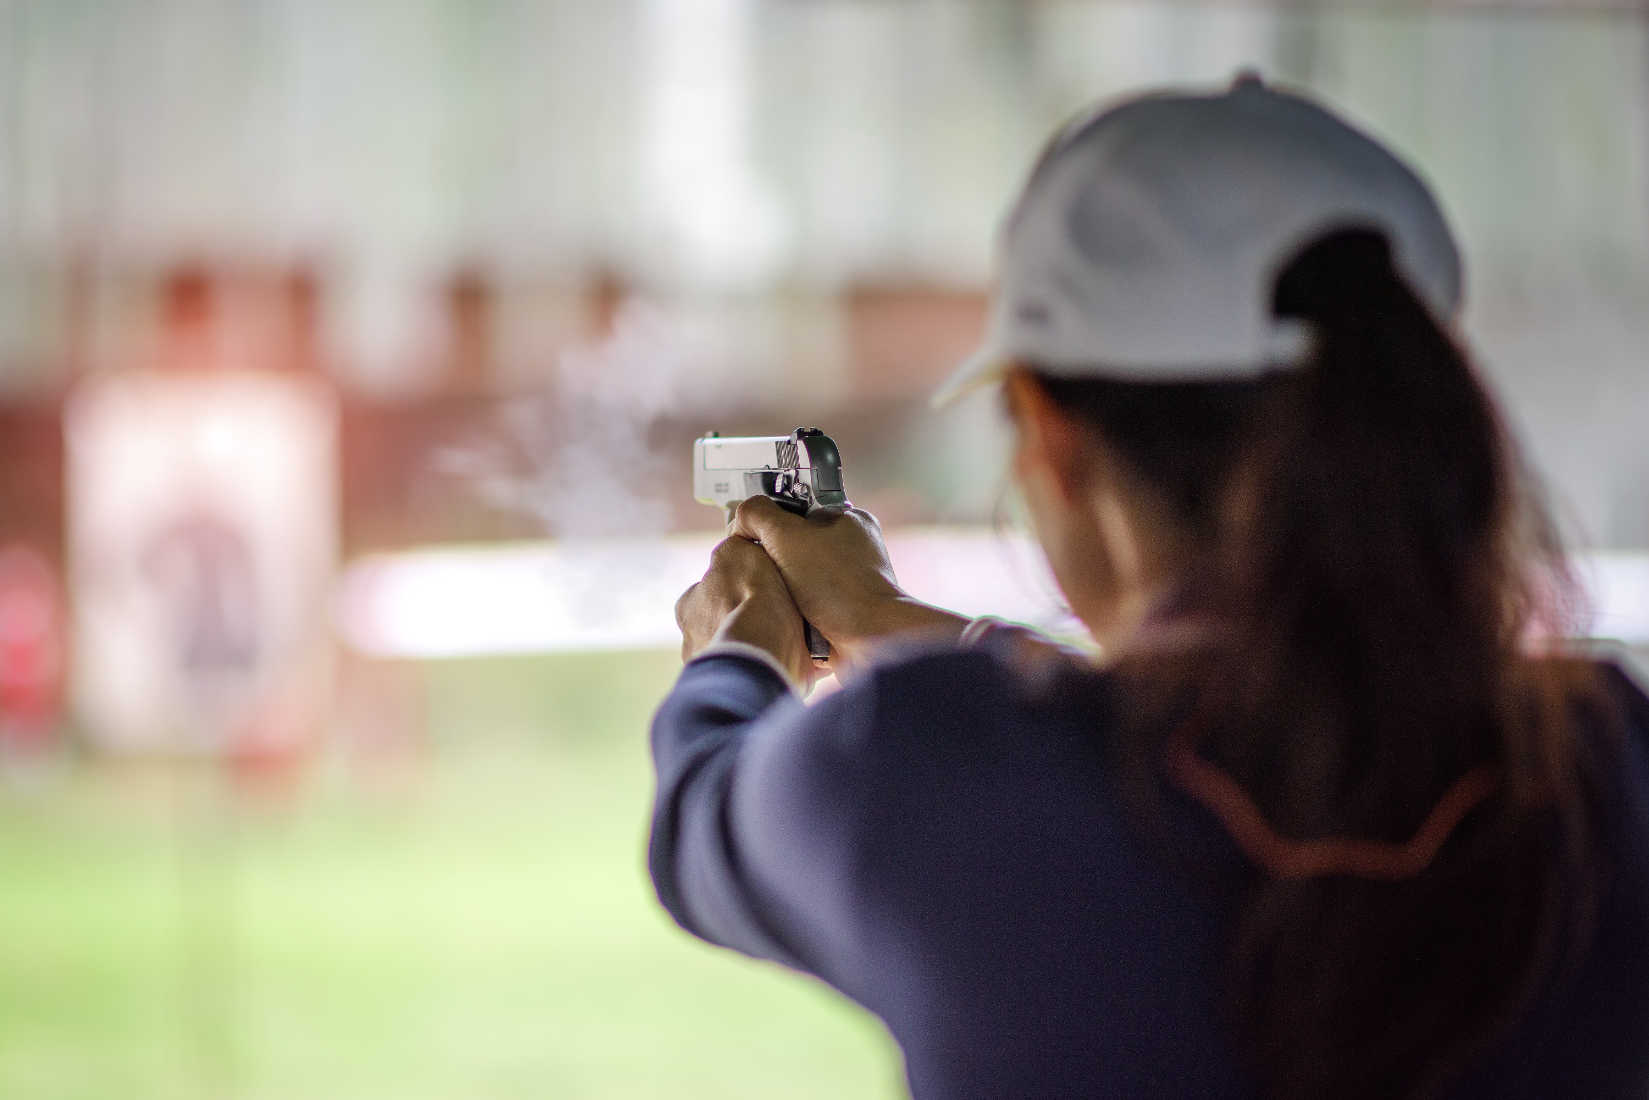 Georgia Tech Student Club Teaches Handgun Self-Defense Techniques